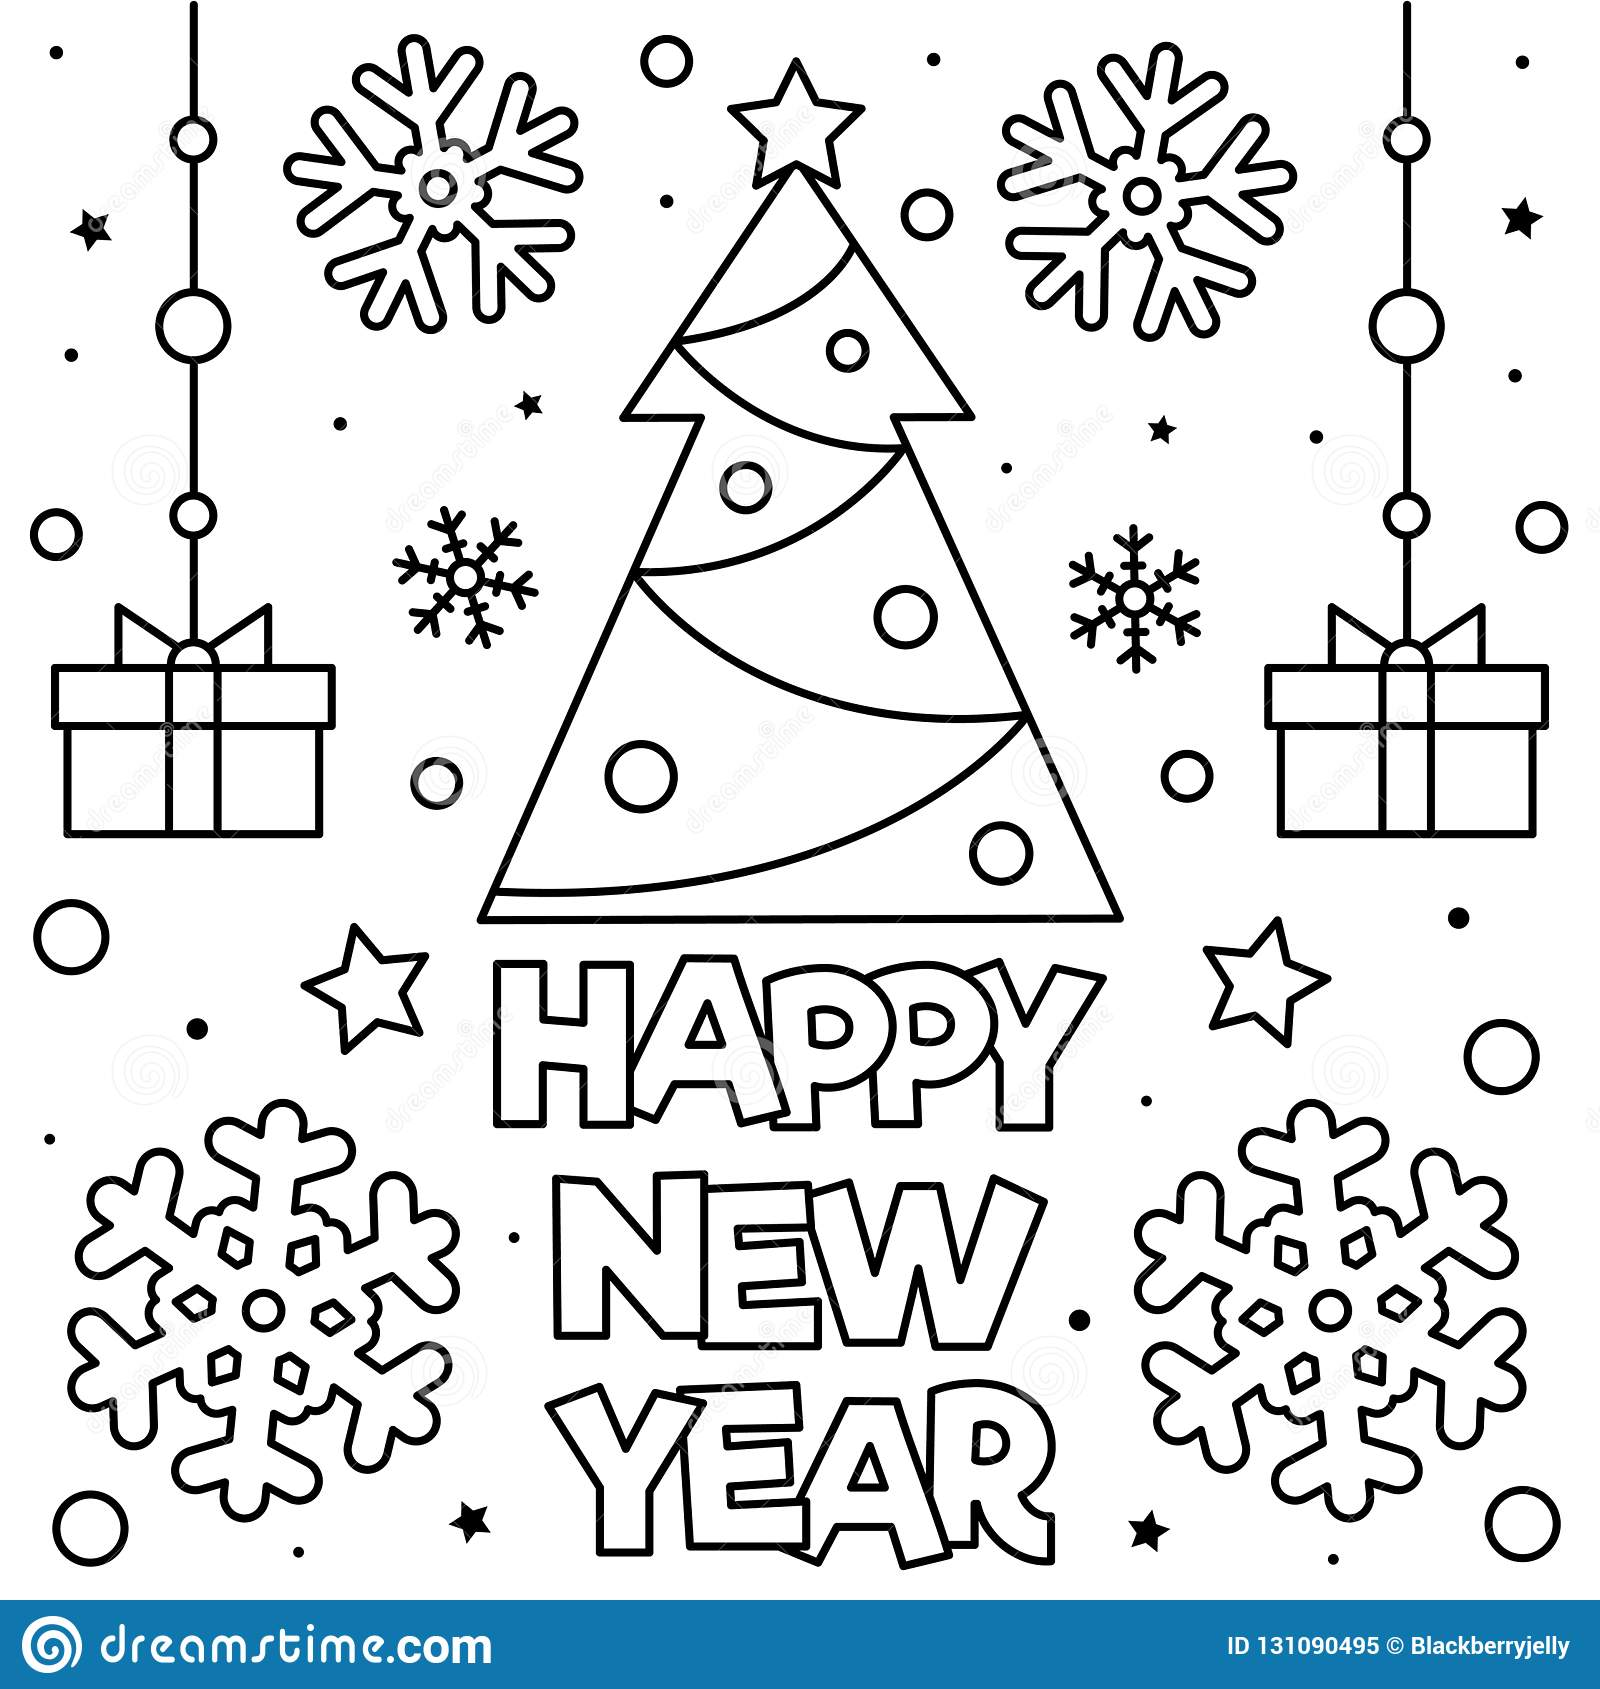 Happy New Year Coloring Page Vector Illustration Stock Vector Illustration Of Cartoon Design 131090495